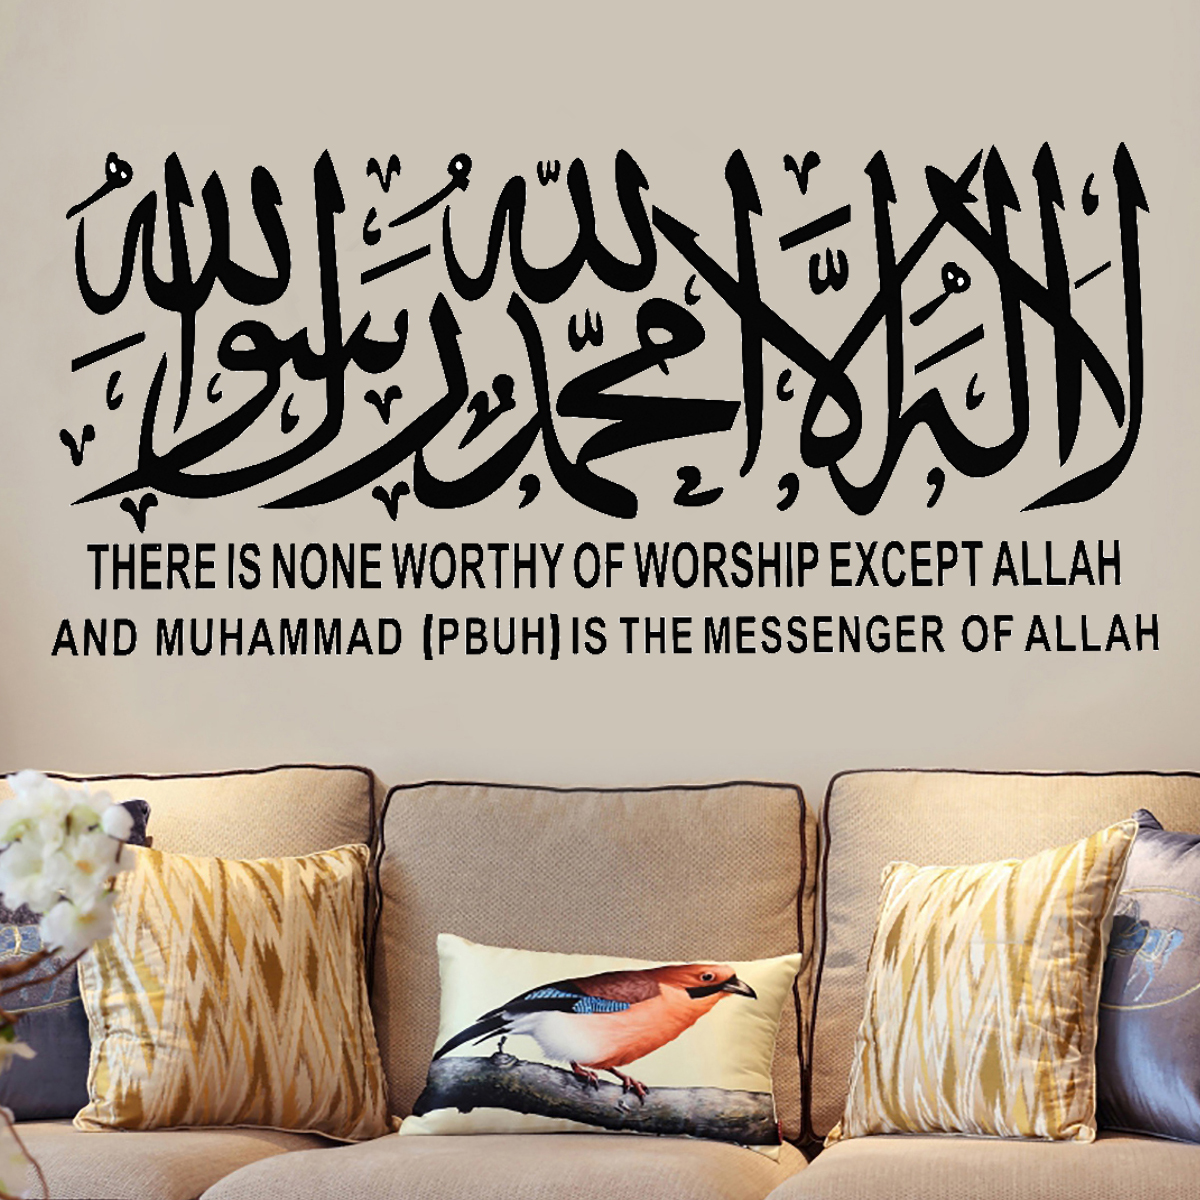 PVC Islamic Muslim Mural Art Calligraphy Removable Wall Sticker Decal Home Decor